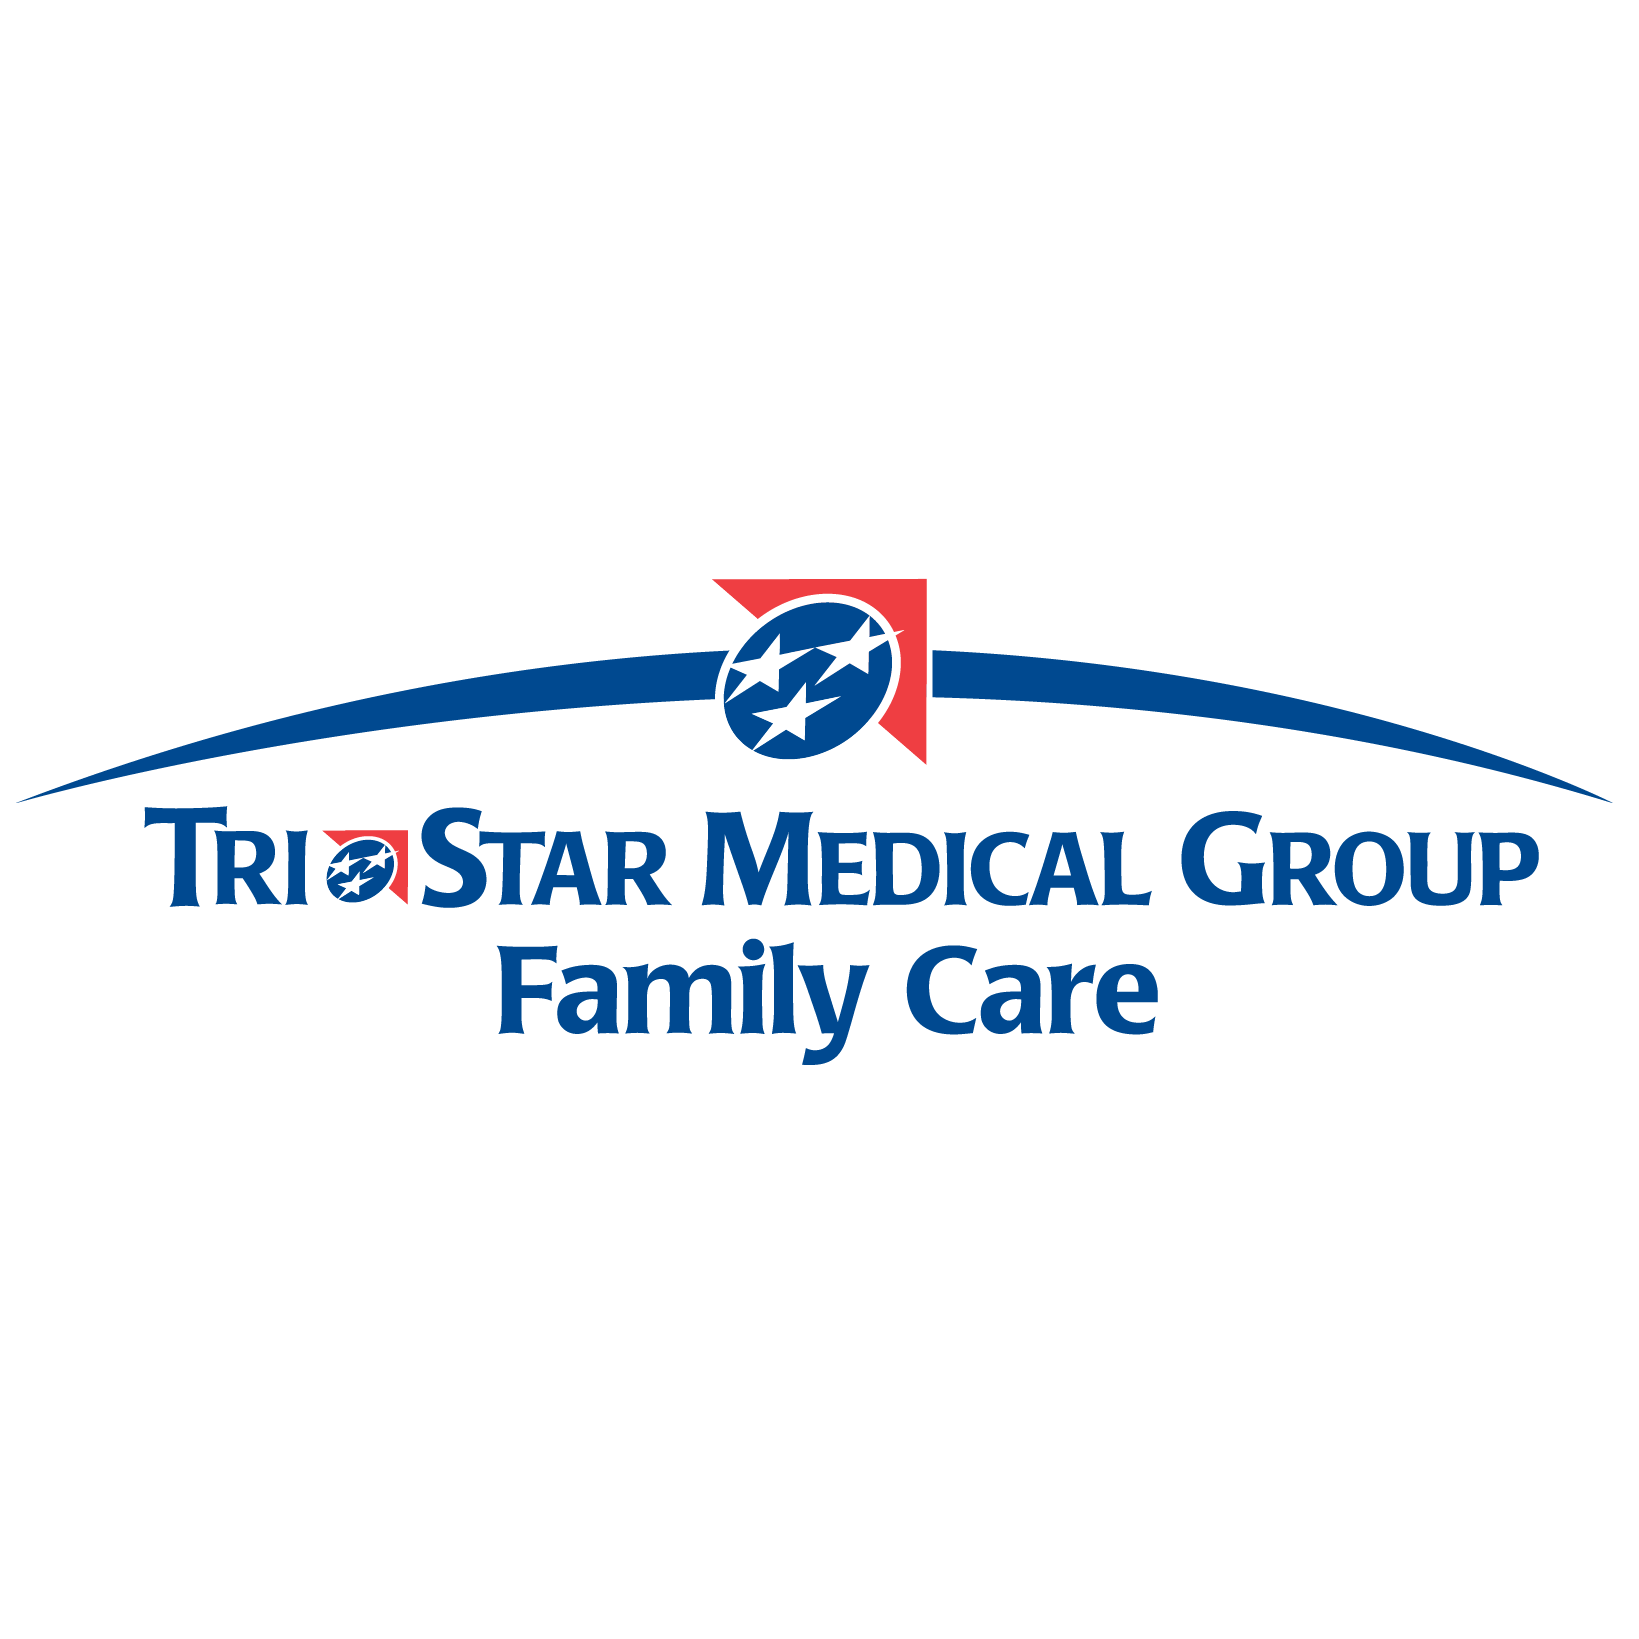 TriStar Family Care - Kingston Springs, TN - General or Family Practice Physicians